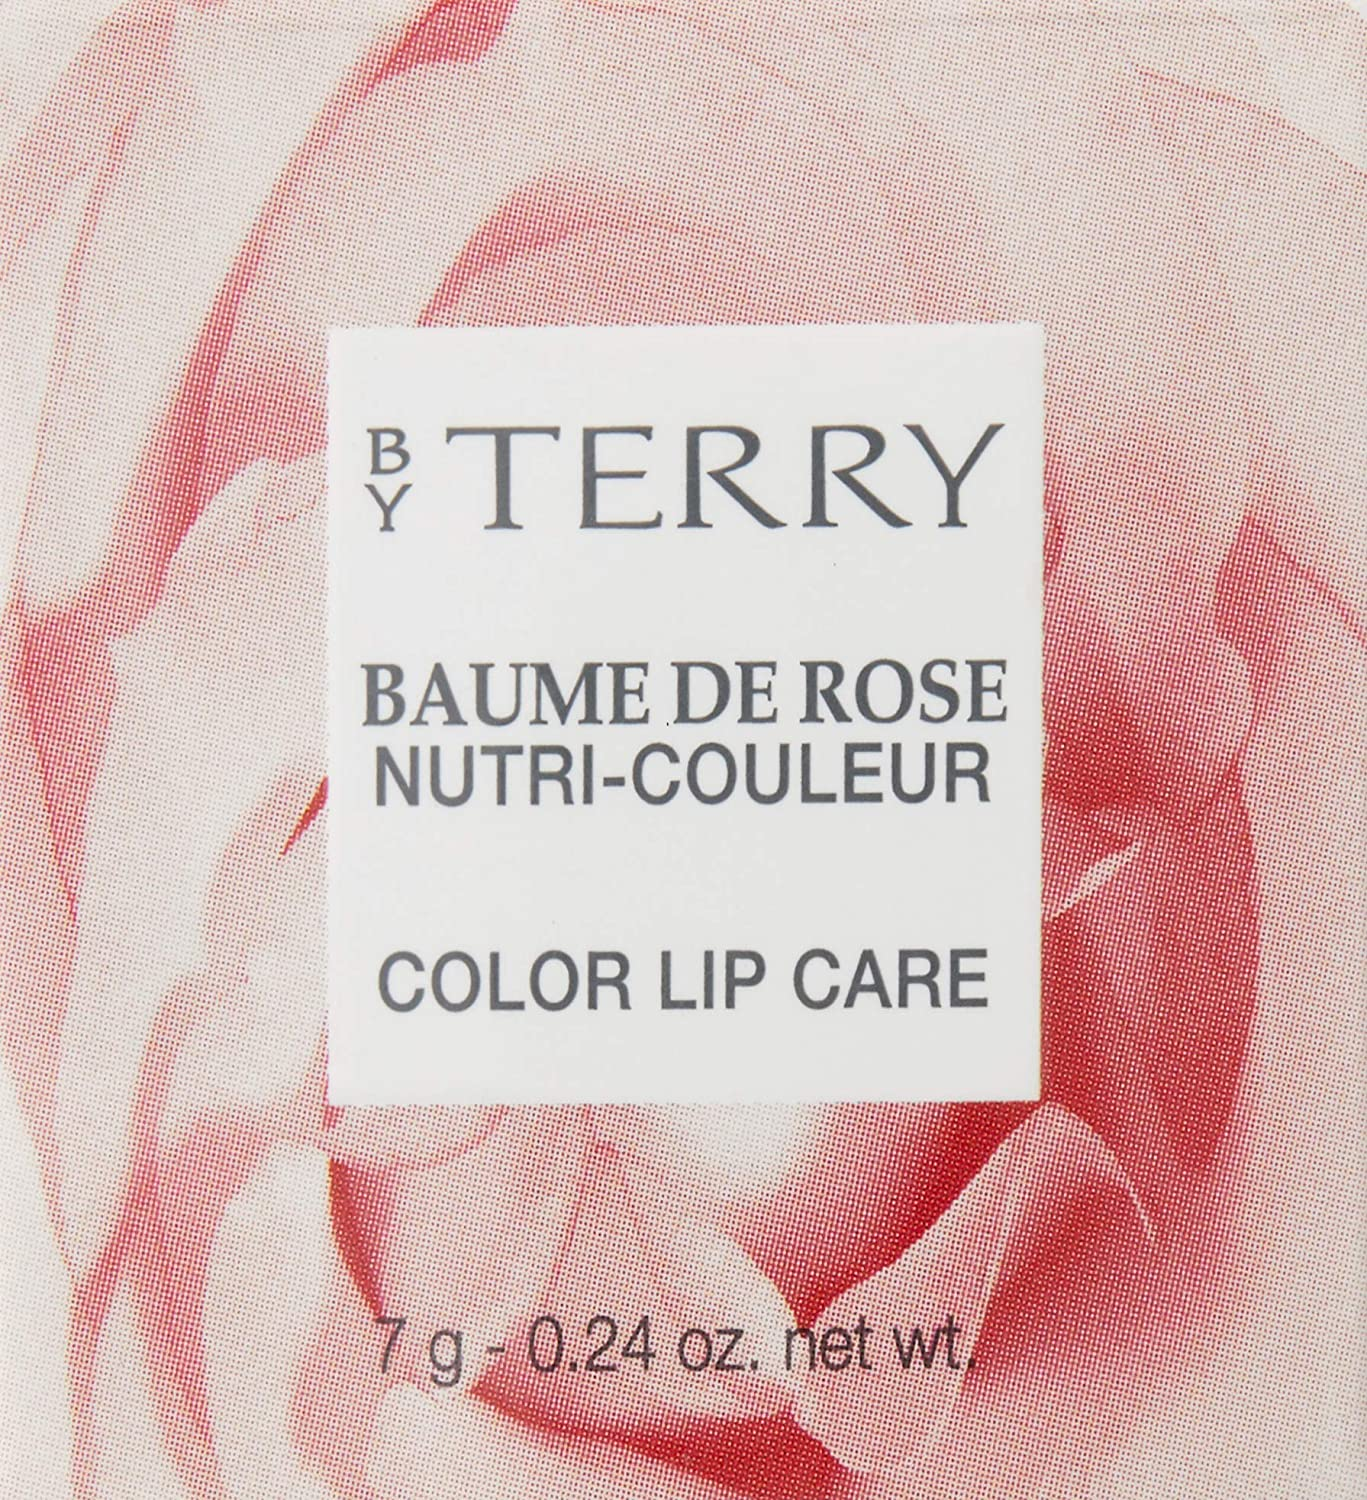 By Terry Baume de Rose Nutri Couleur, No.6 Toffee Cream, 7 g